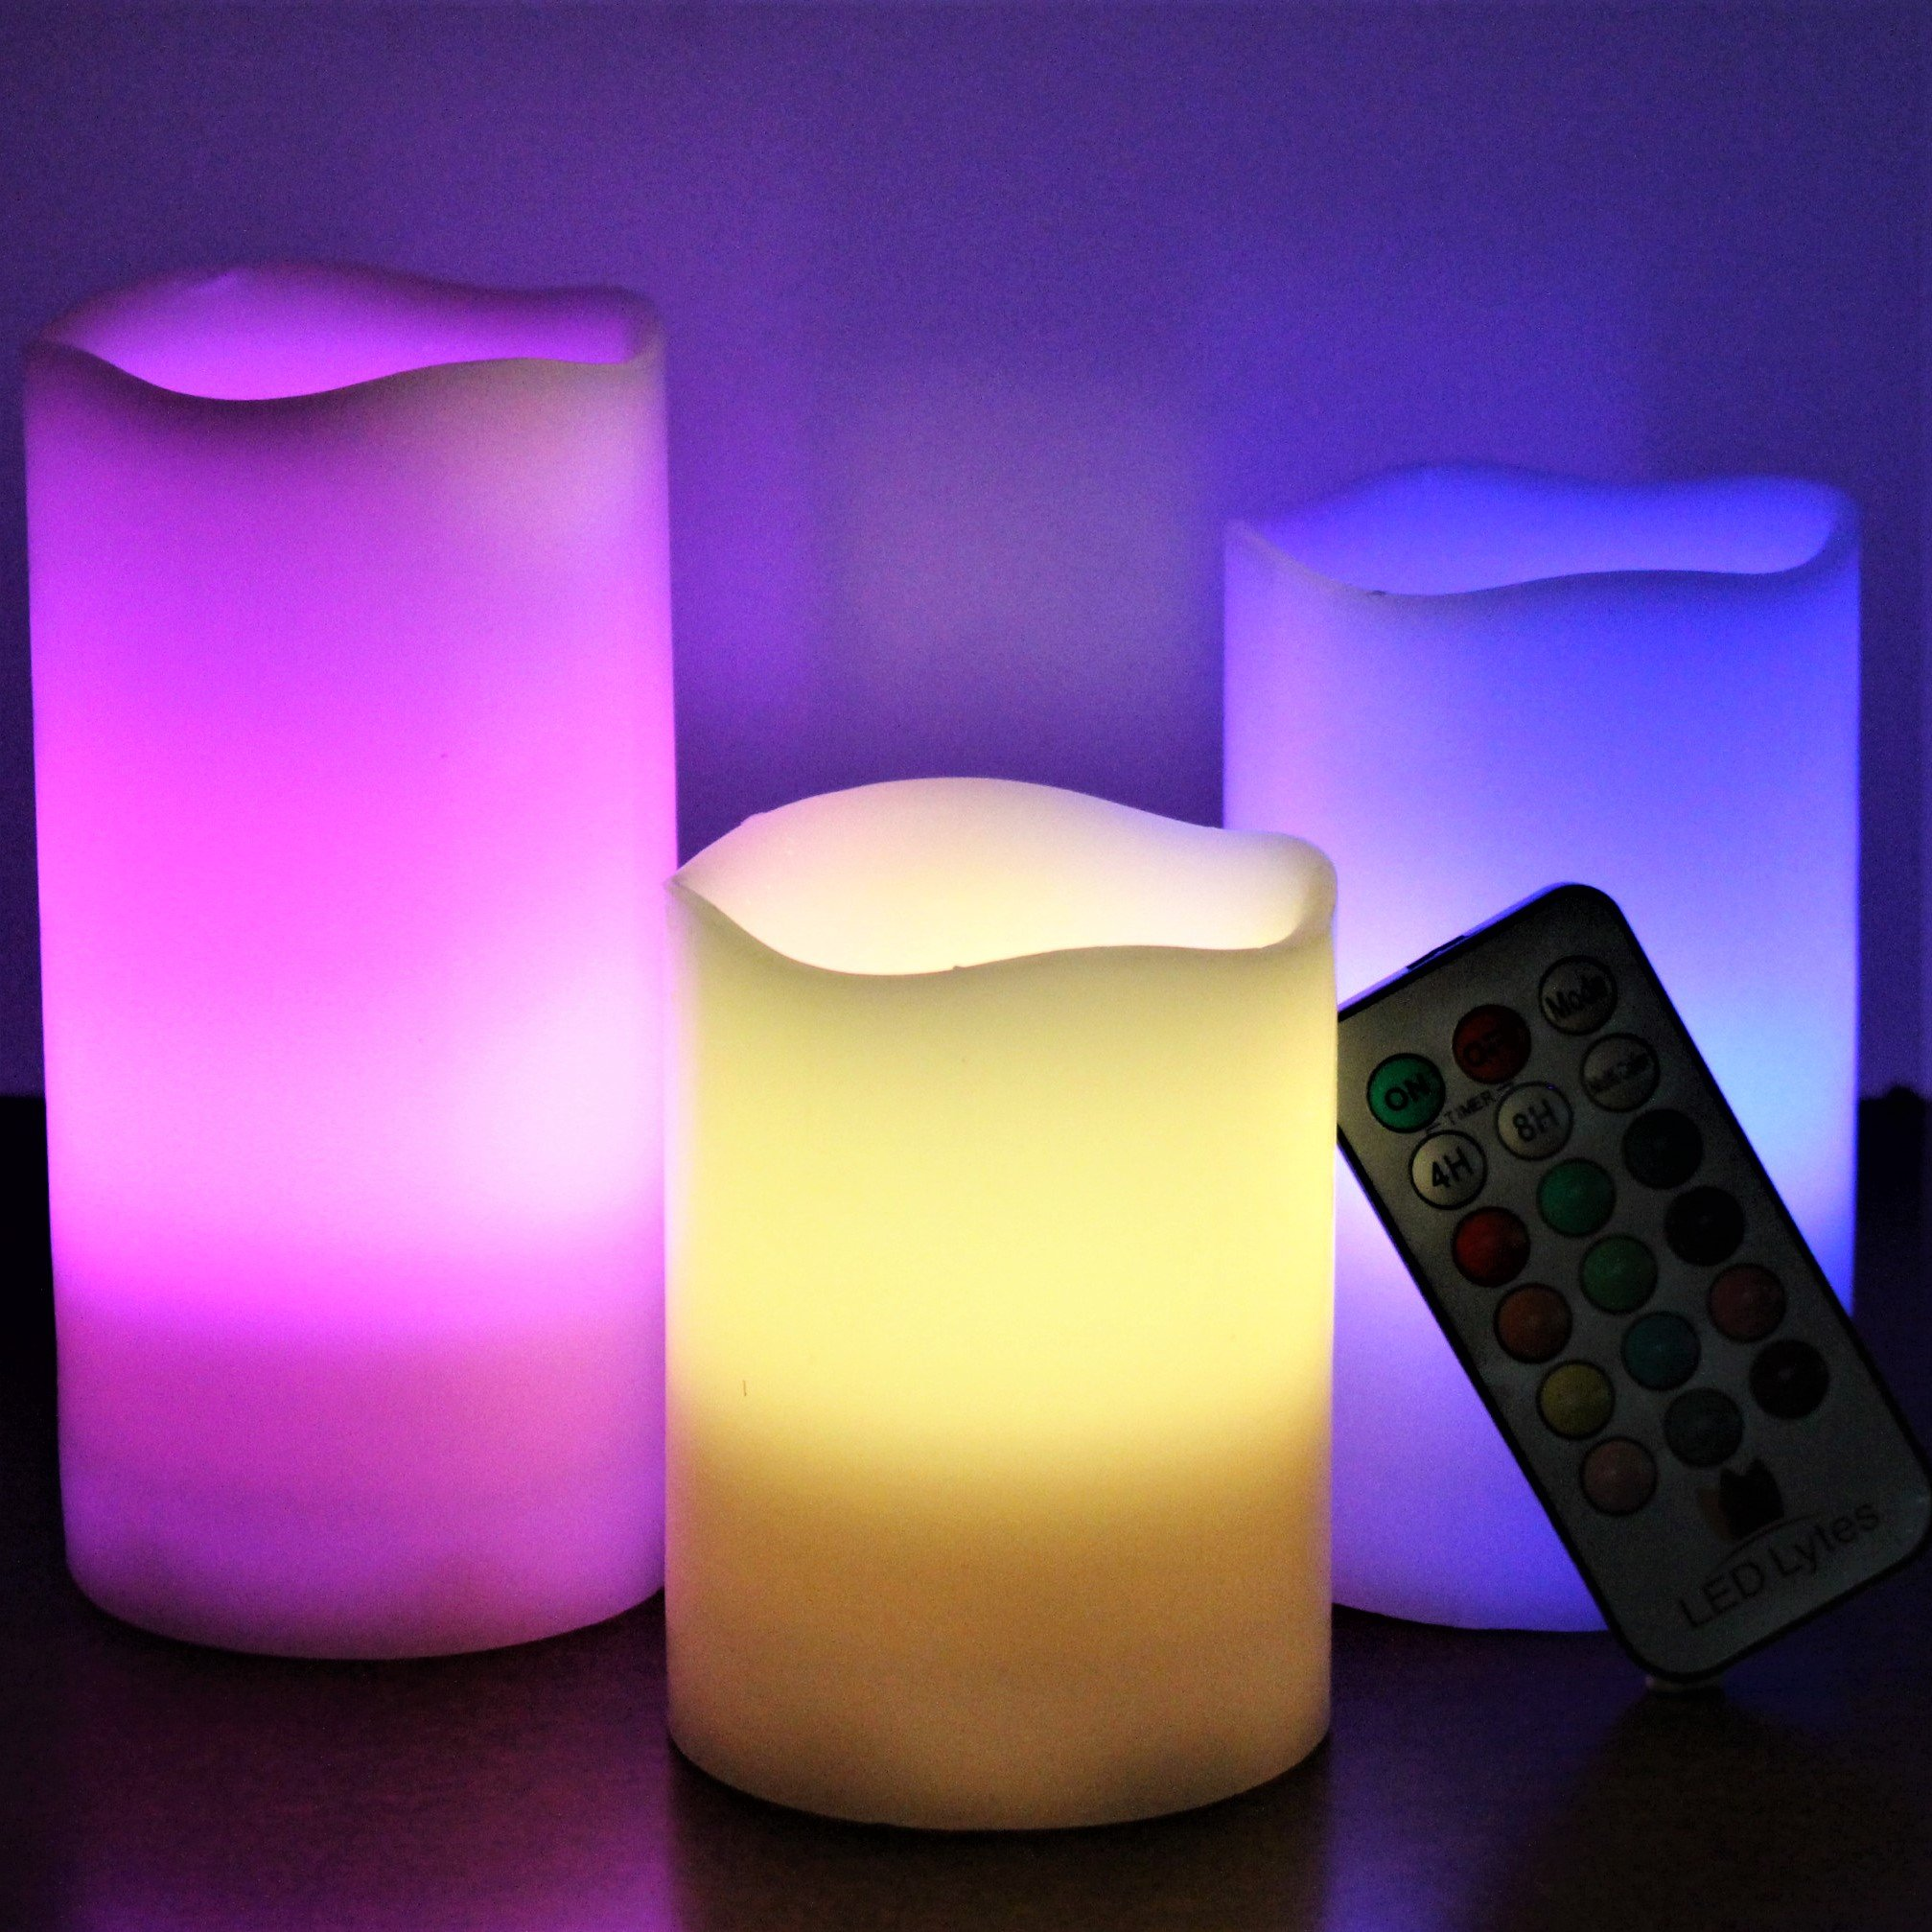 LED Lytes Flickering Flameless Candles - Battery Operated Candles Vanilla Scented Set of 3 Round Ivory Wax Flickering Multi Colored Flame, auto-Off Timer Remote Control Weddings Gifts by LED Lytes (Image #6)